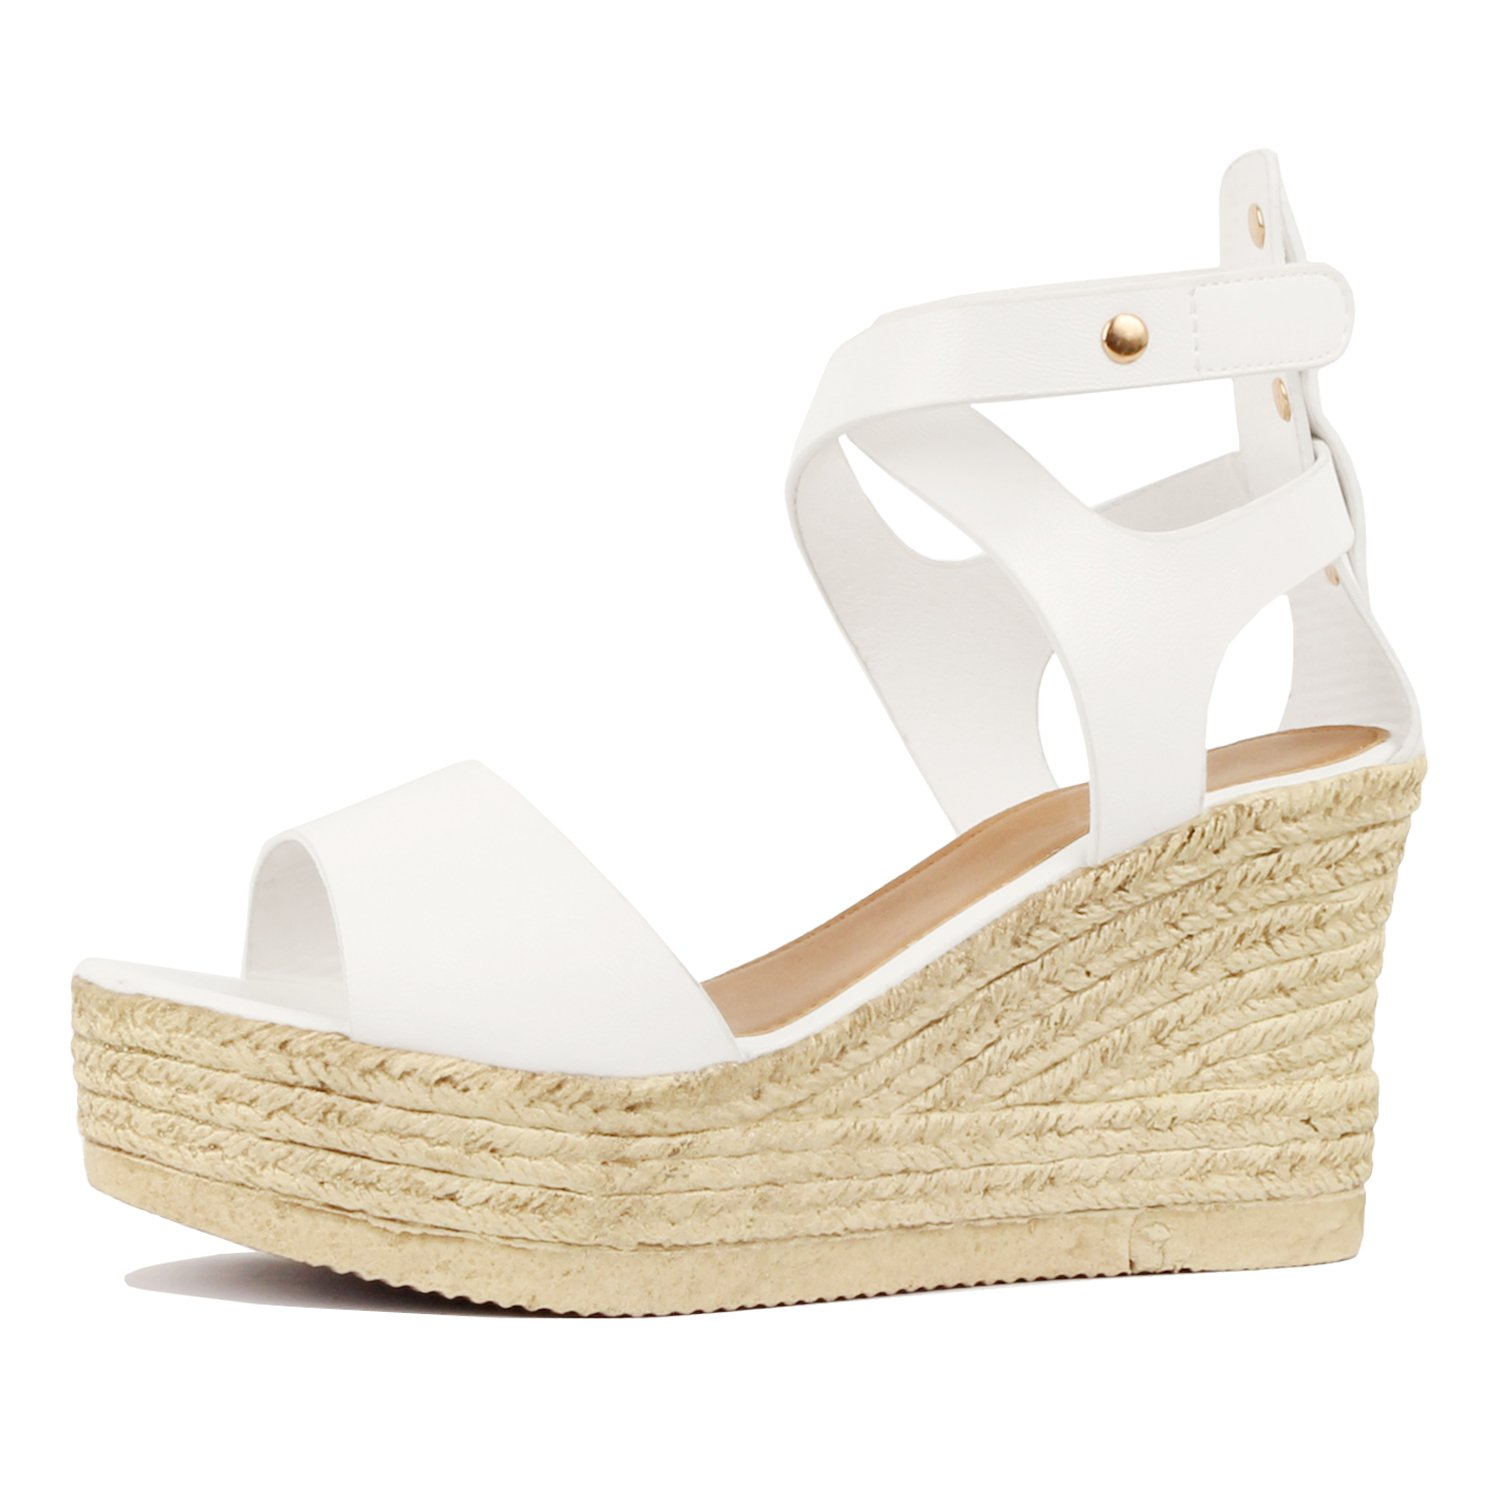 Guilty Heart - Womens Casual Comfortable Braided Bottom Platofrm Open Toe Summer Wedge Sandal Platforms & Wedges (8 B(M) US, 02 White Pu)